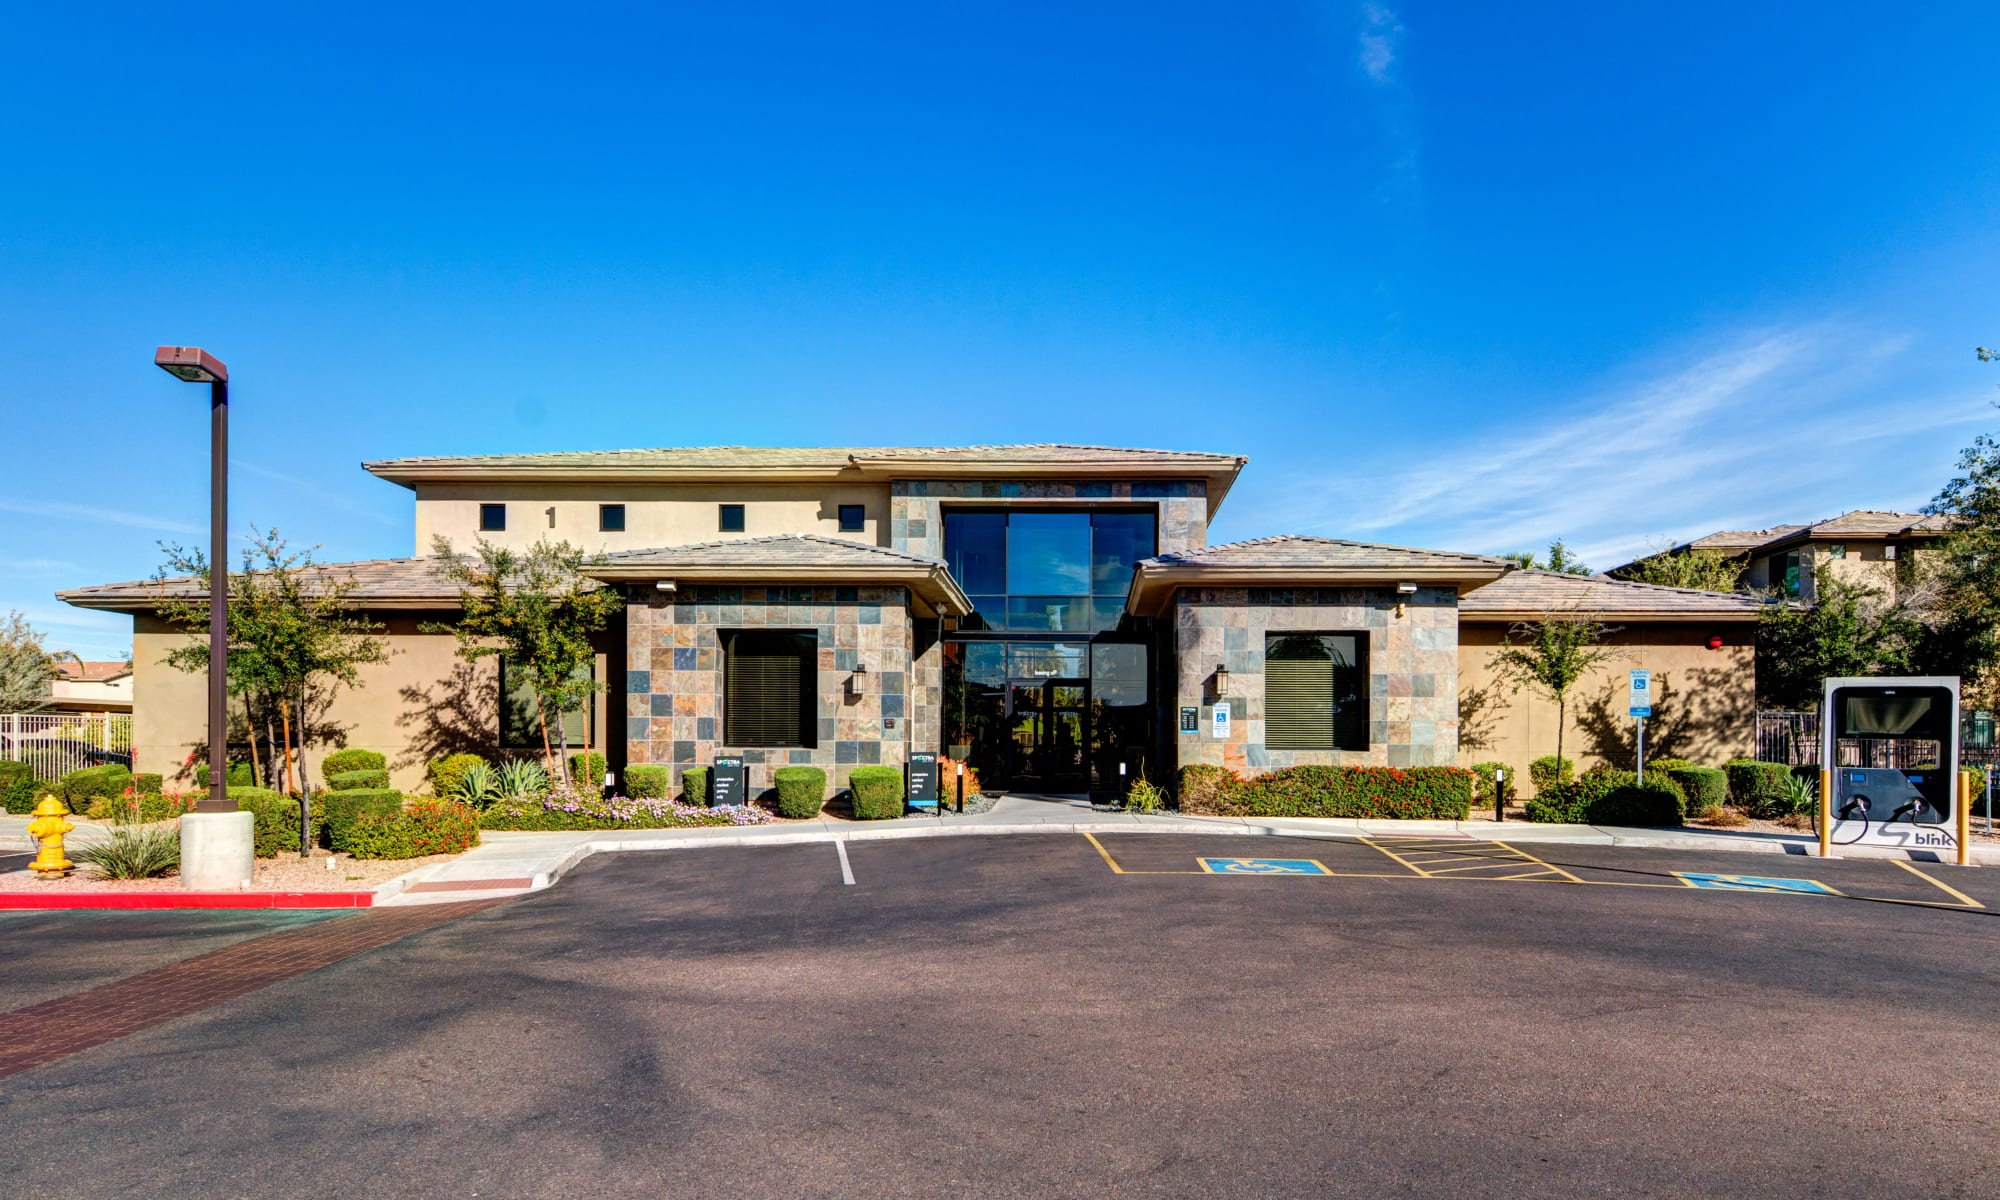 Leasing office at Spectra on 7th South in Phoenix, Arizona